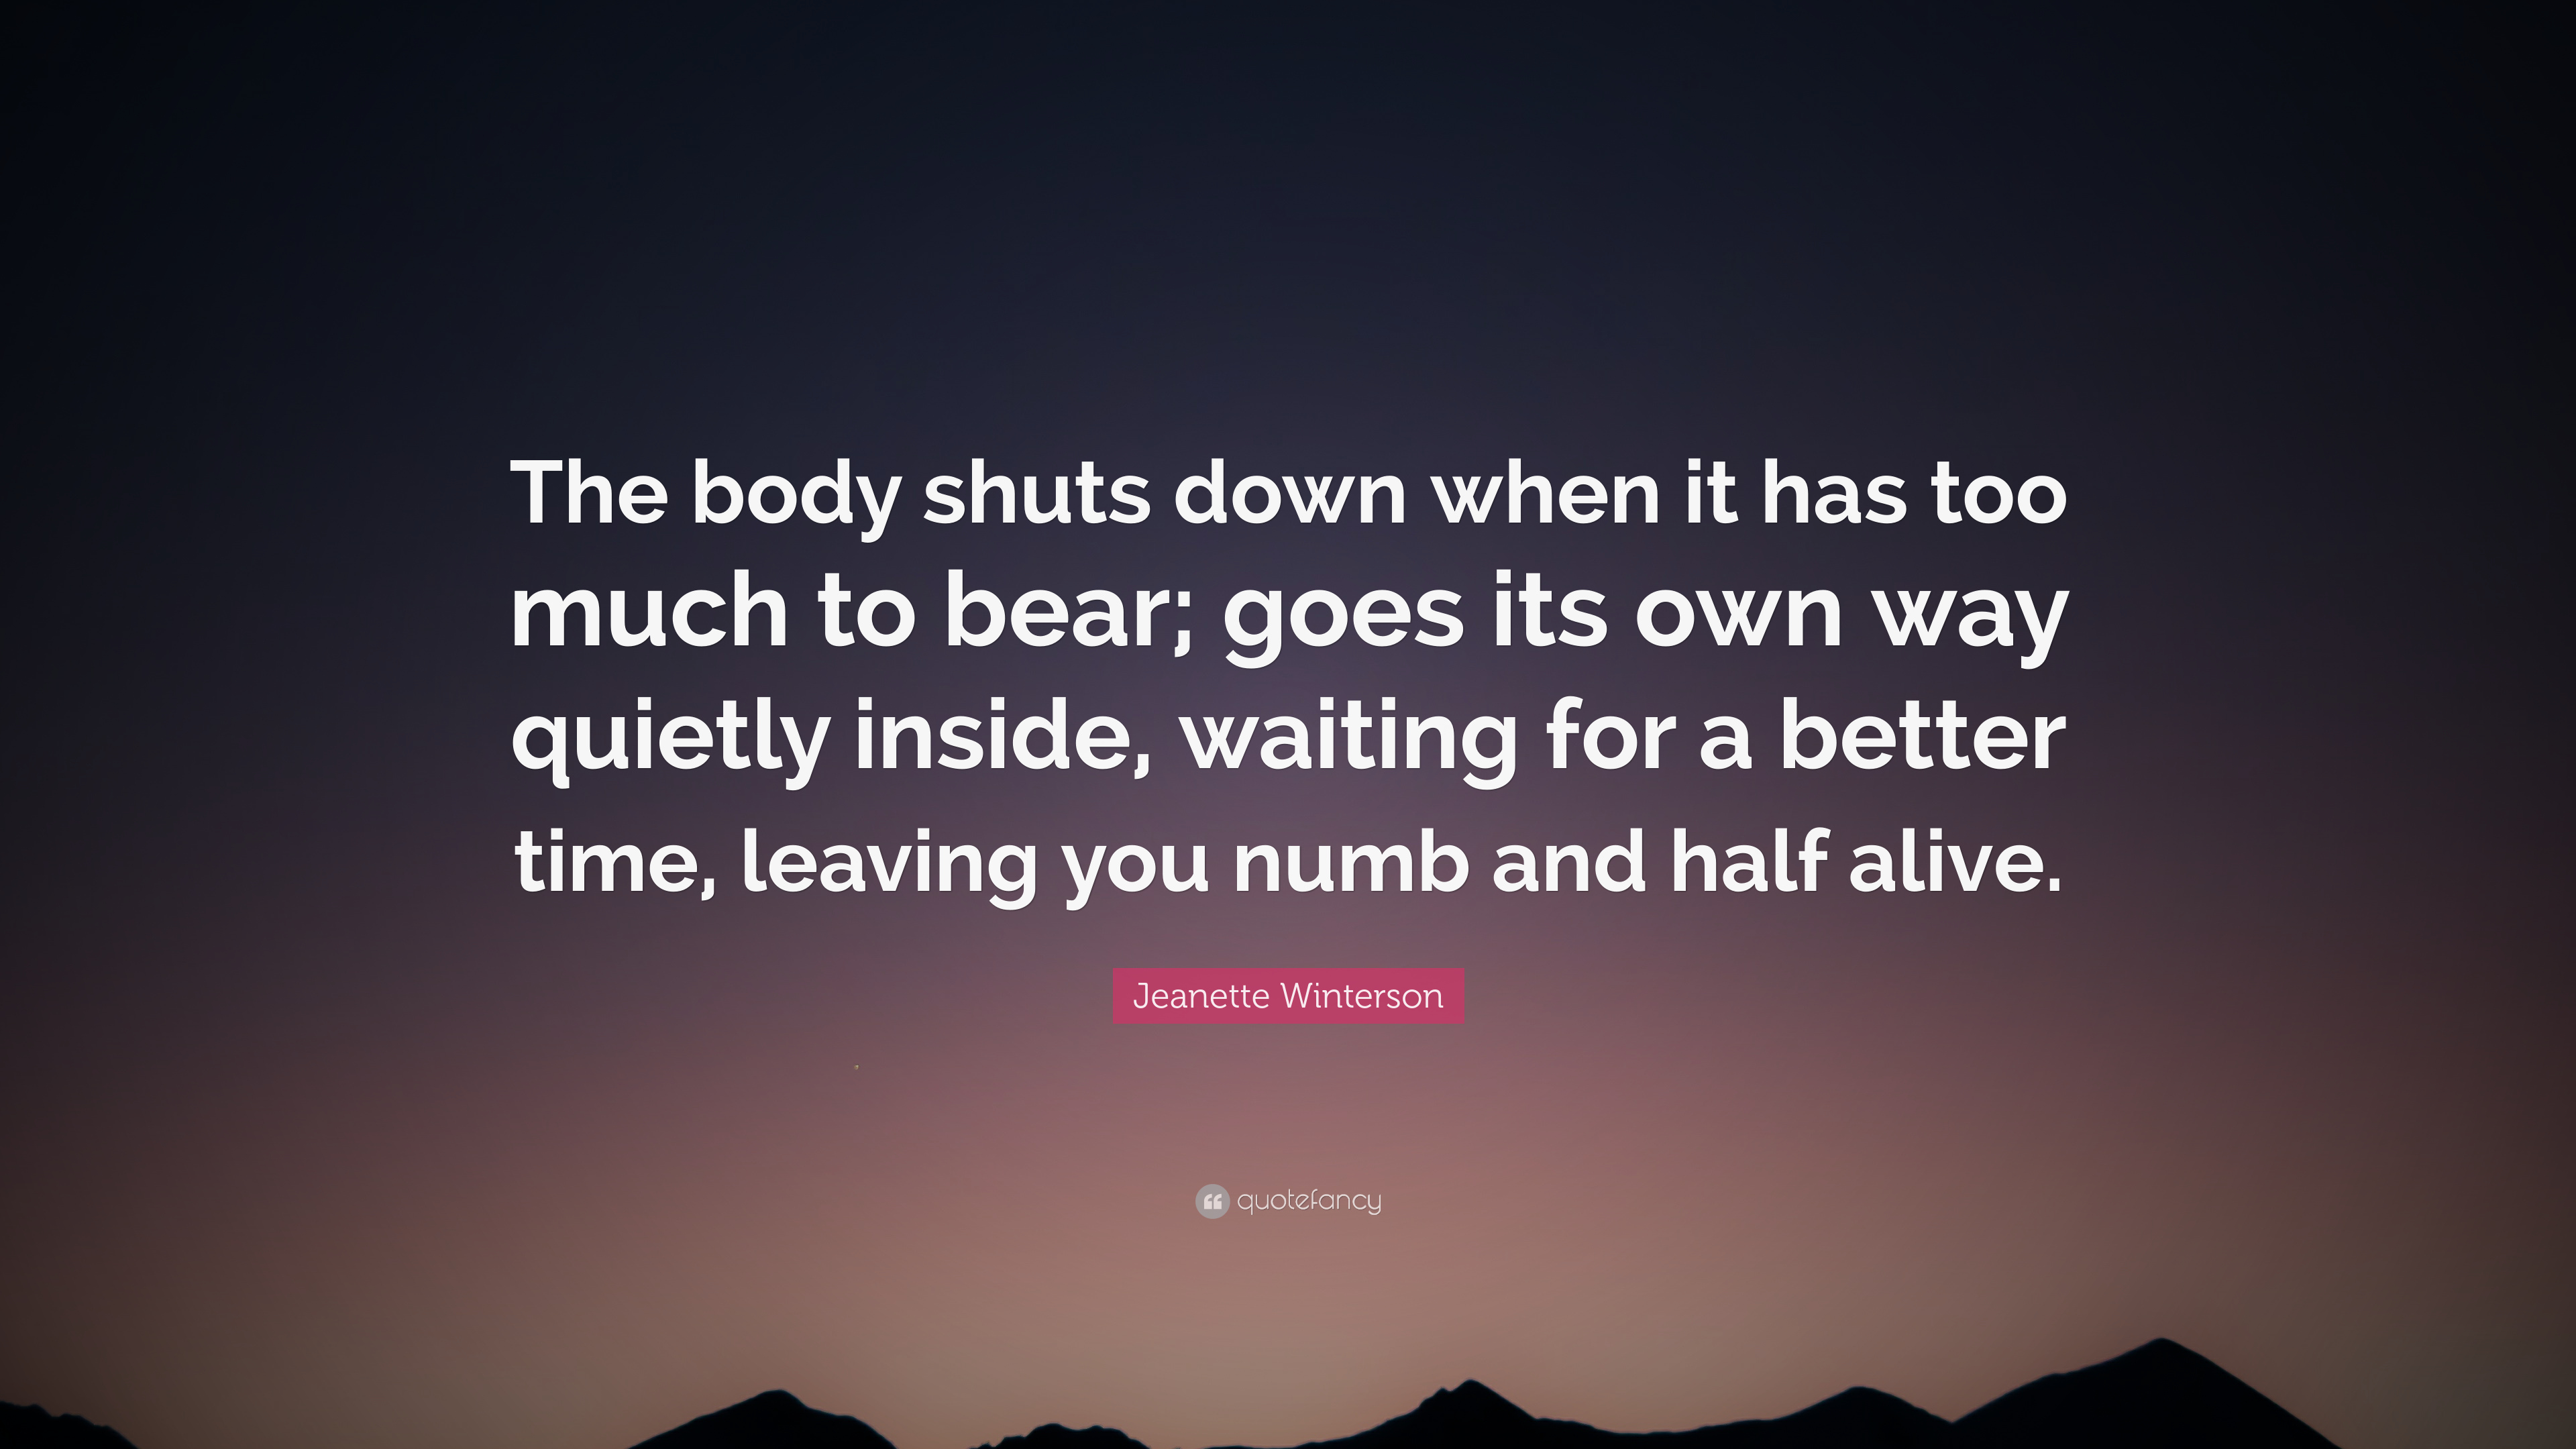 Jeanette Winterson Quote The Body Shuts Down When It Has Too Much To Bear Goes Its Own Way Quietly Inside Waiting For A Better Time Leaving Yo 7 Wallpapers Quotefancy